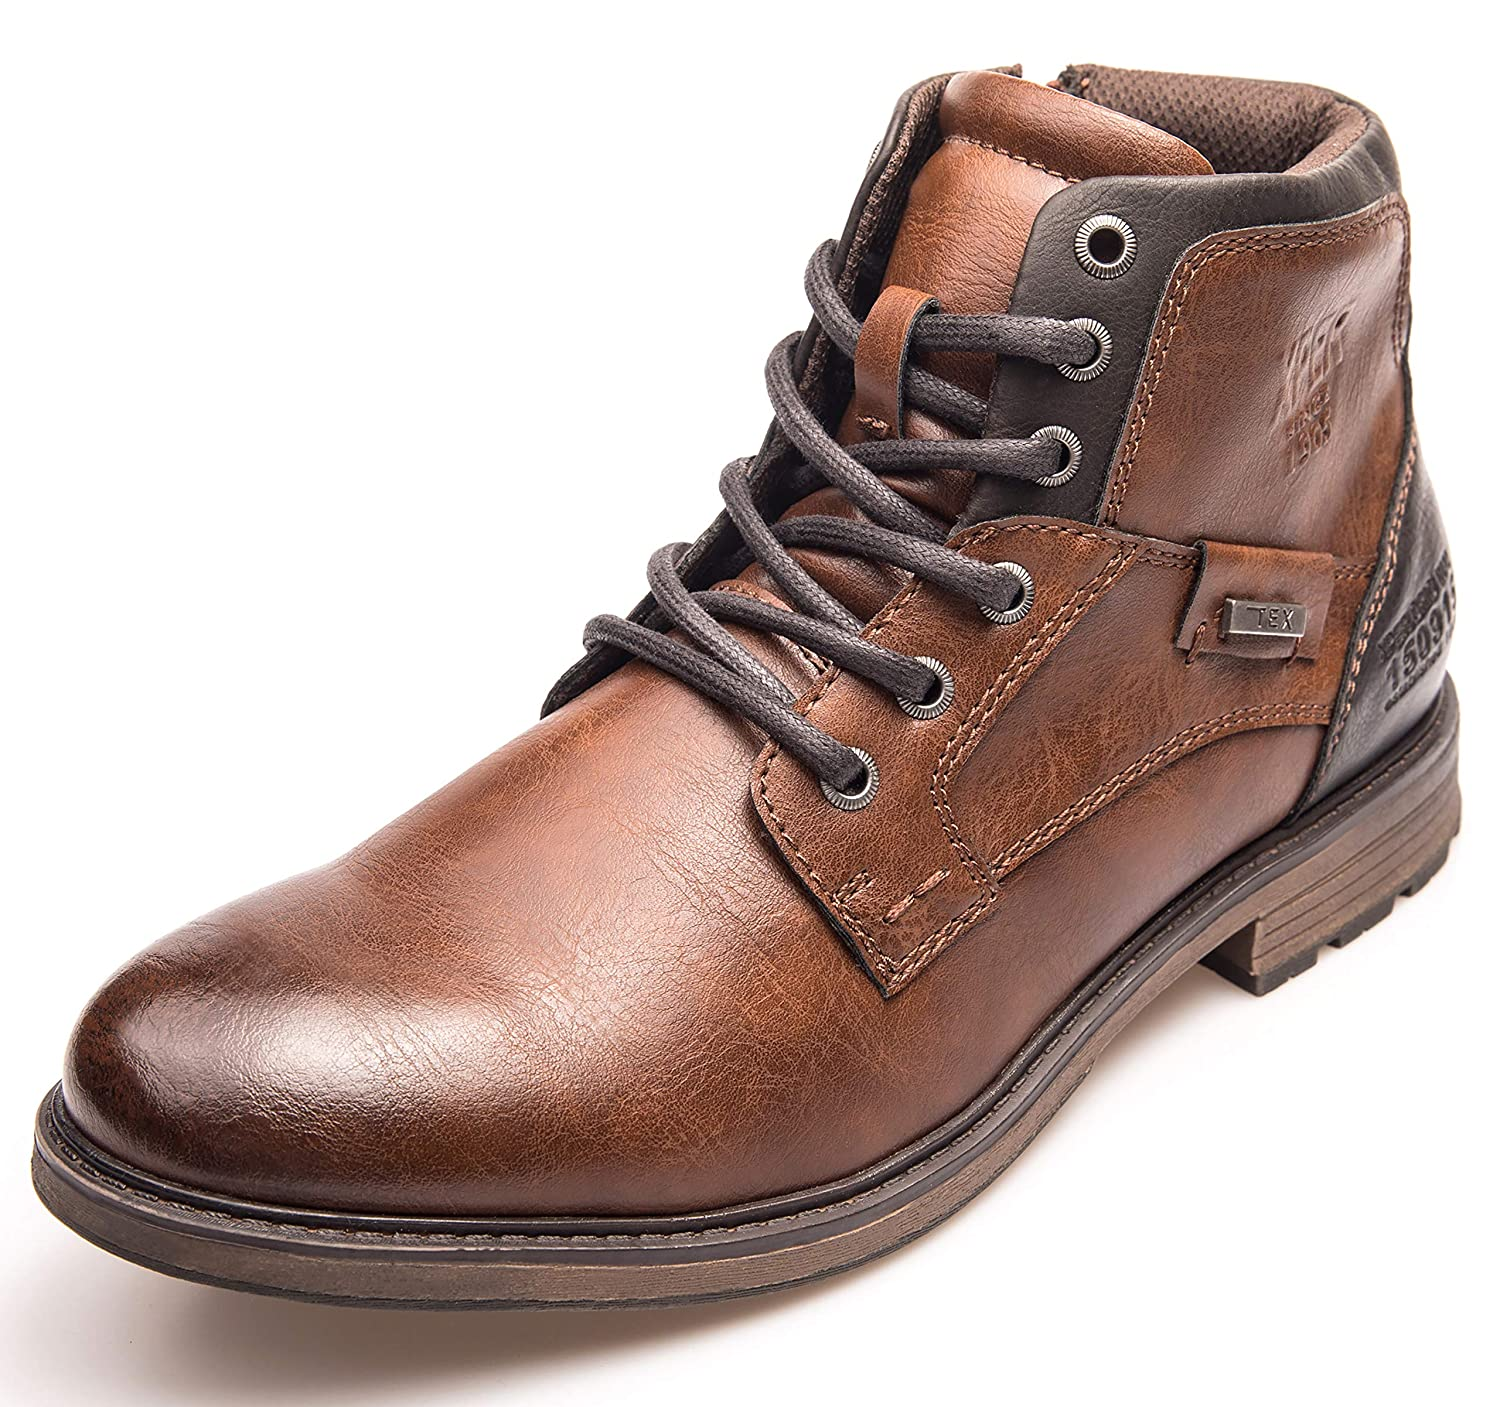 59a00ddc6b Amazon.com: XPER Men's Brown Fashion Footwear Lace up Motorcycle Boots for Men  Combat Winter Ankle Boots Causal Men Shoes: Shoes